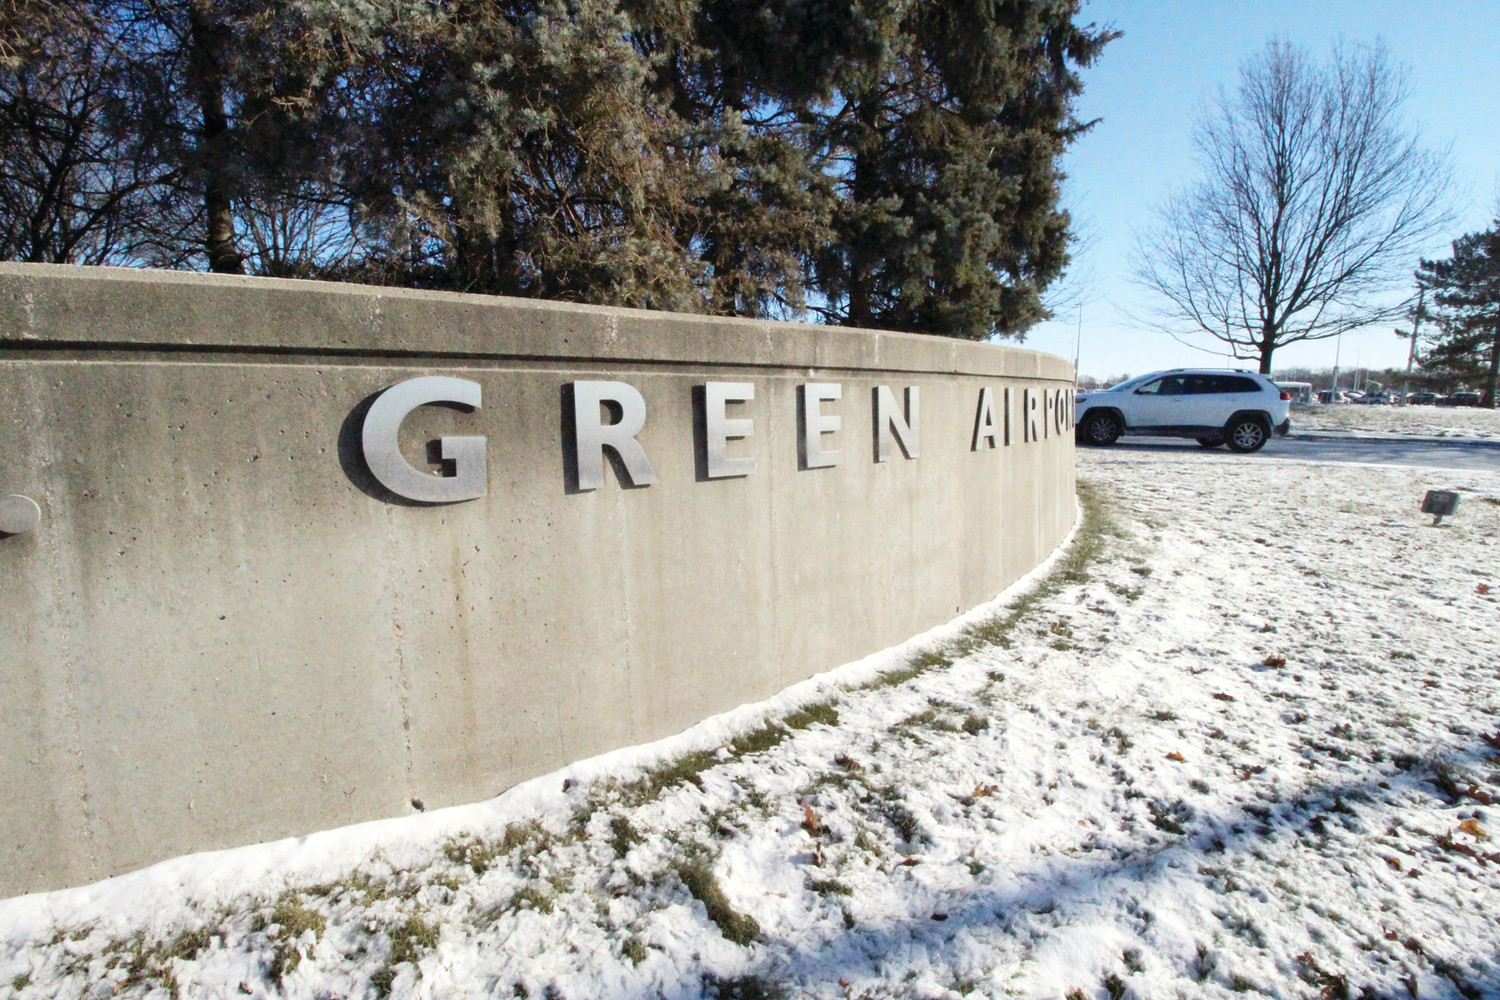 Could T.F. Green have a new name soon?